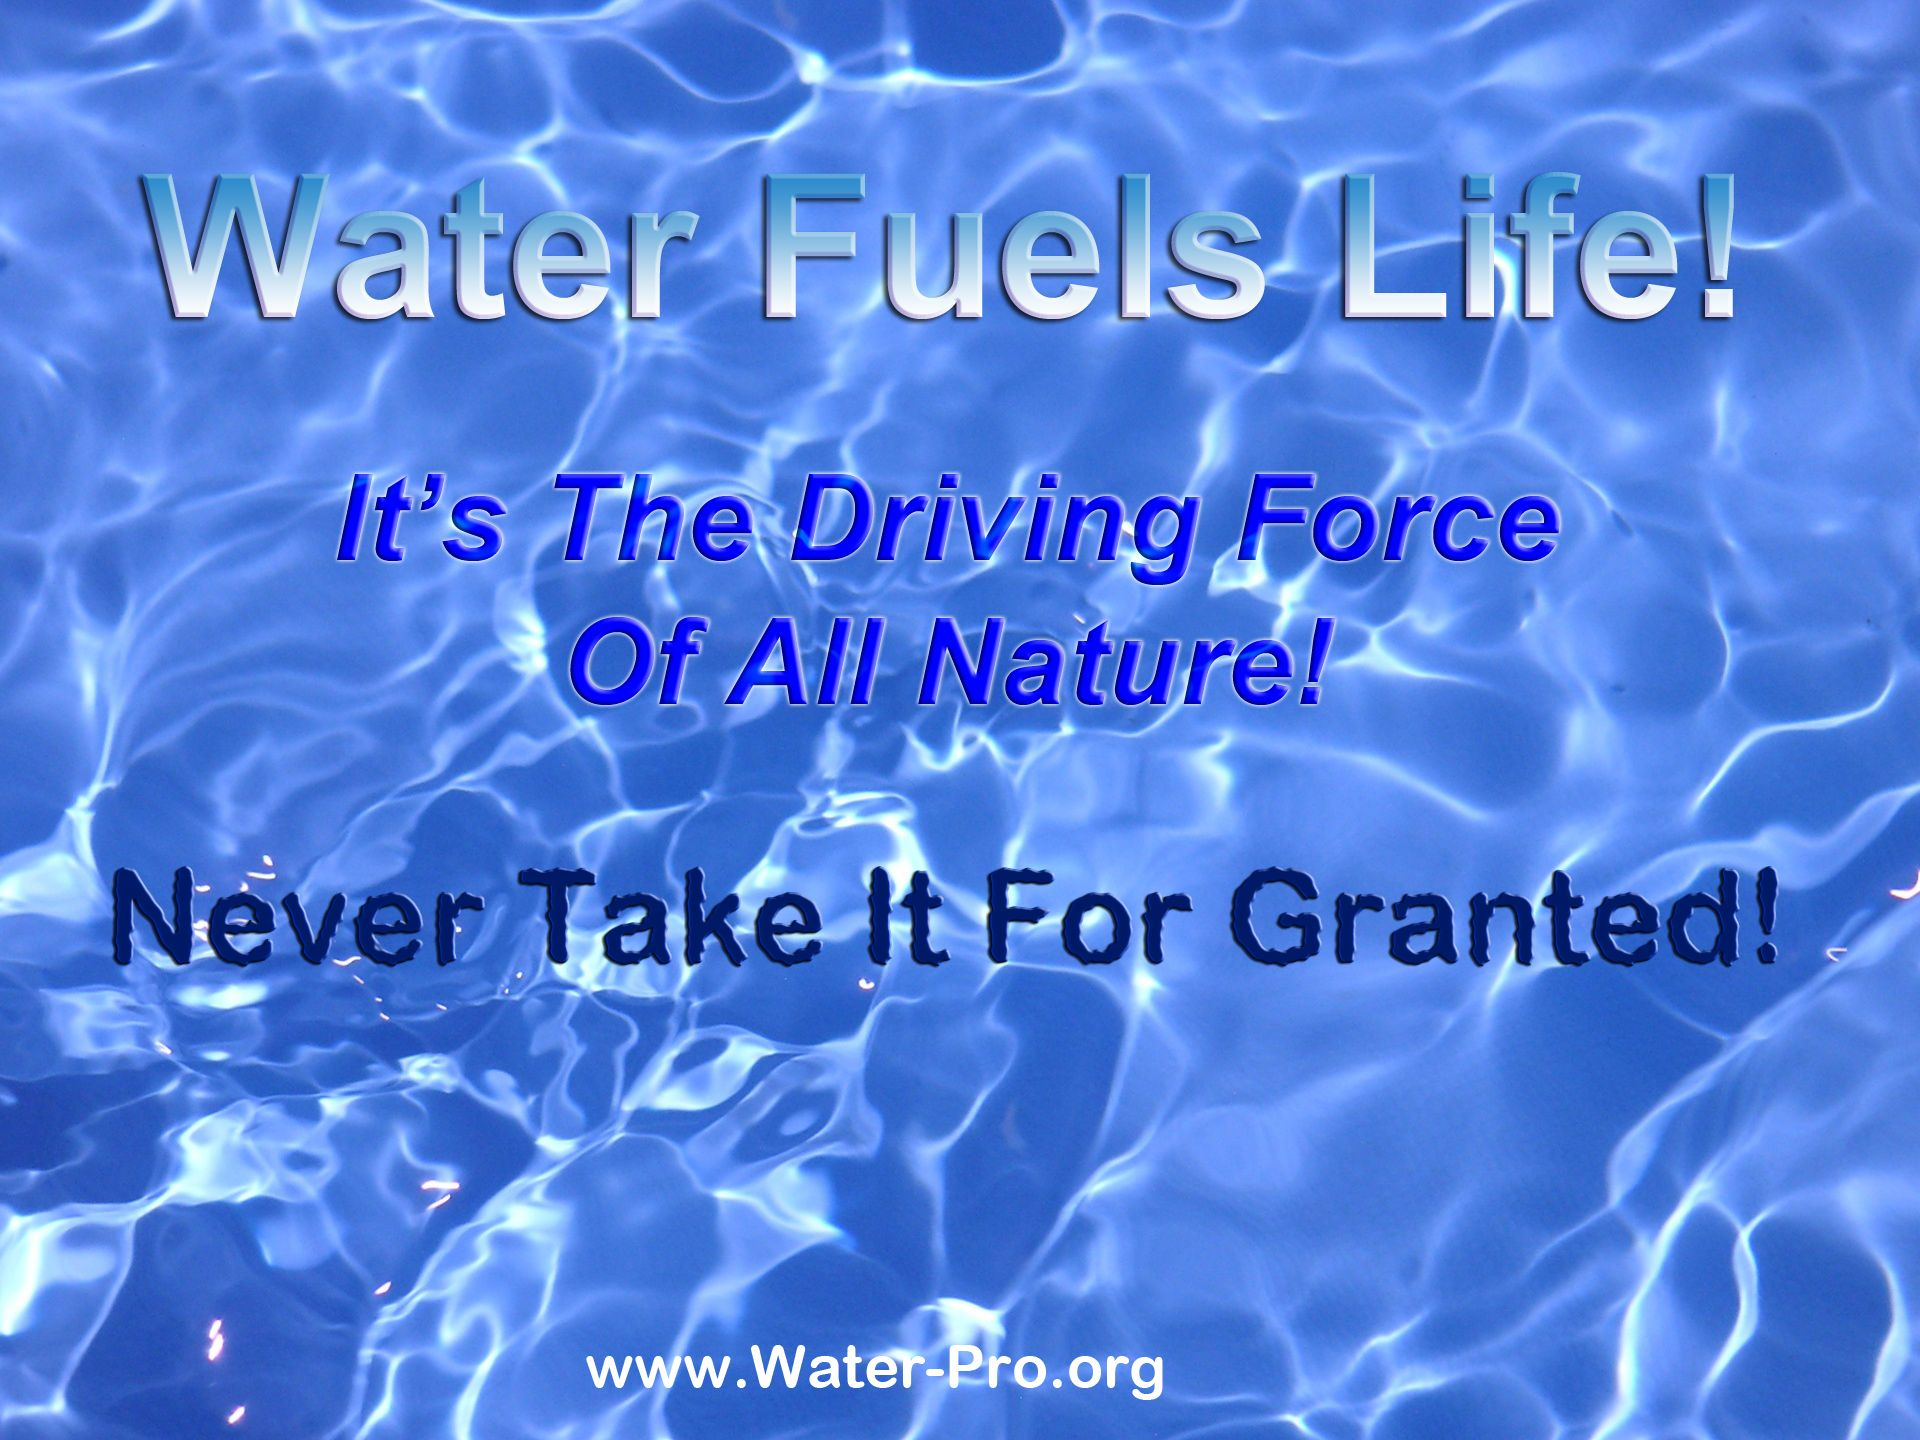 Water Fuels Life It S The Driving Force Of All Nature Never Take It For Granted Http Www Water Pro Org Water Water Patterns Water Background